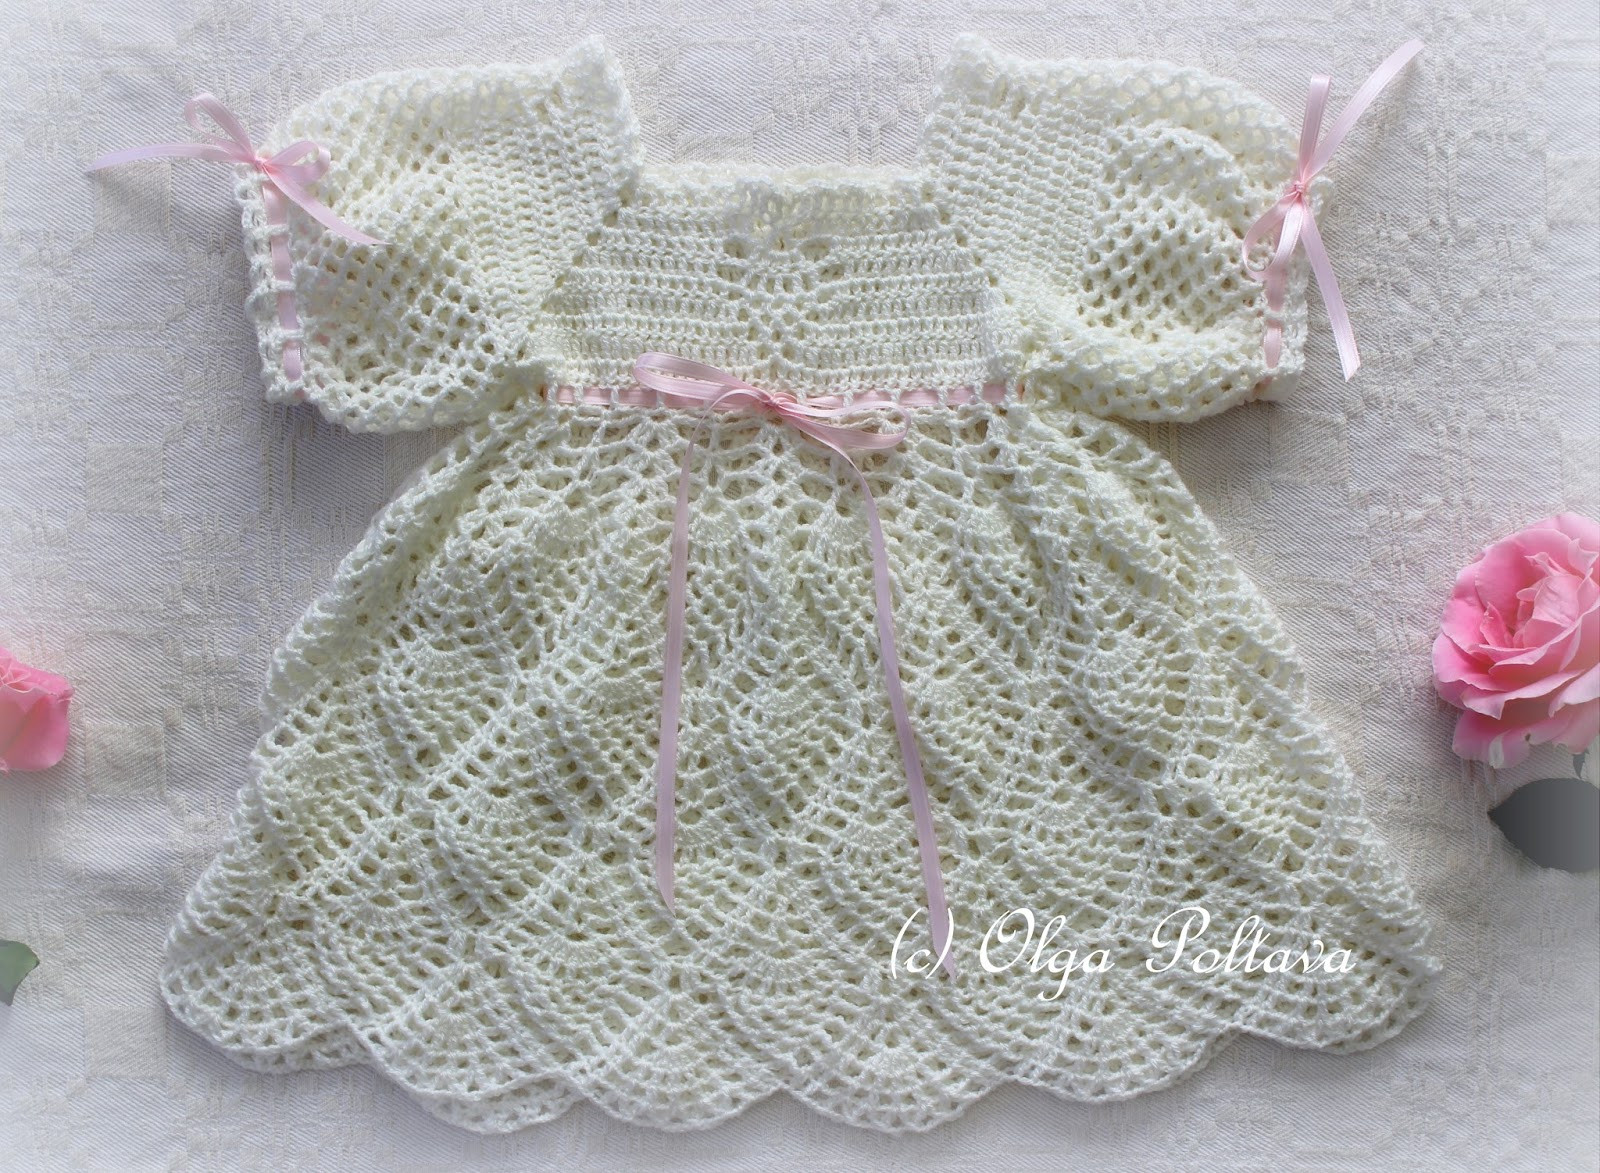 Lacy Crochet Whipped Cream Dress Free Pattern from